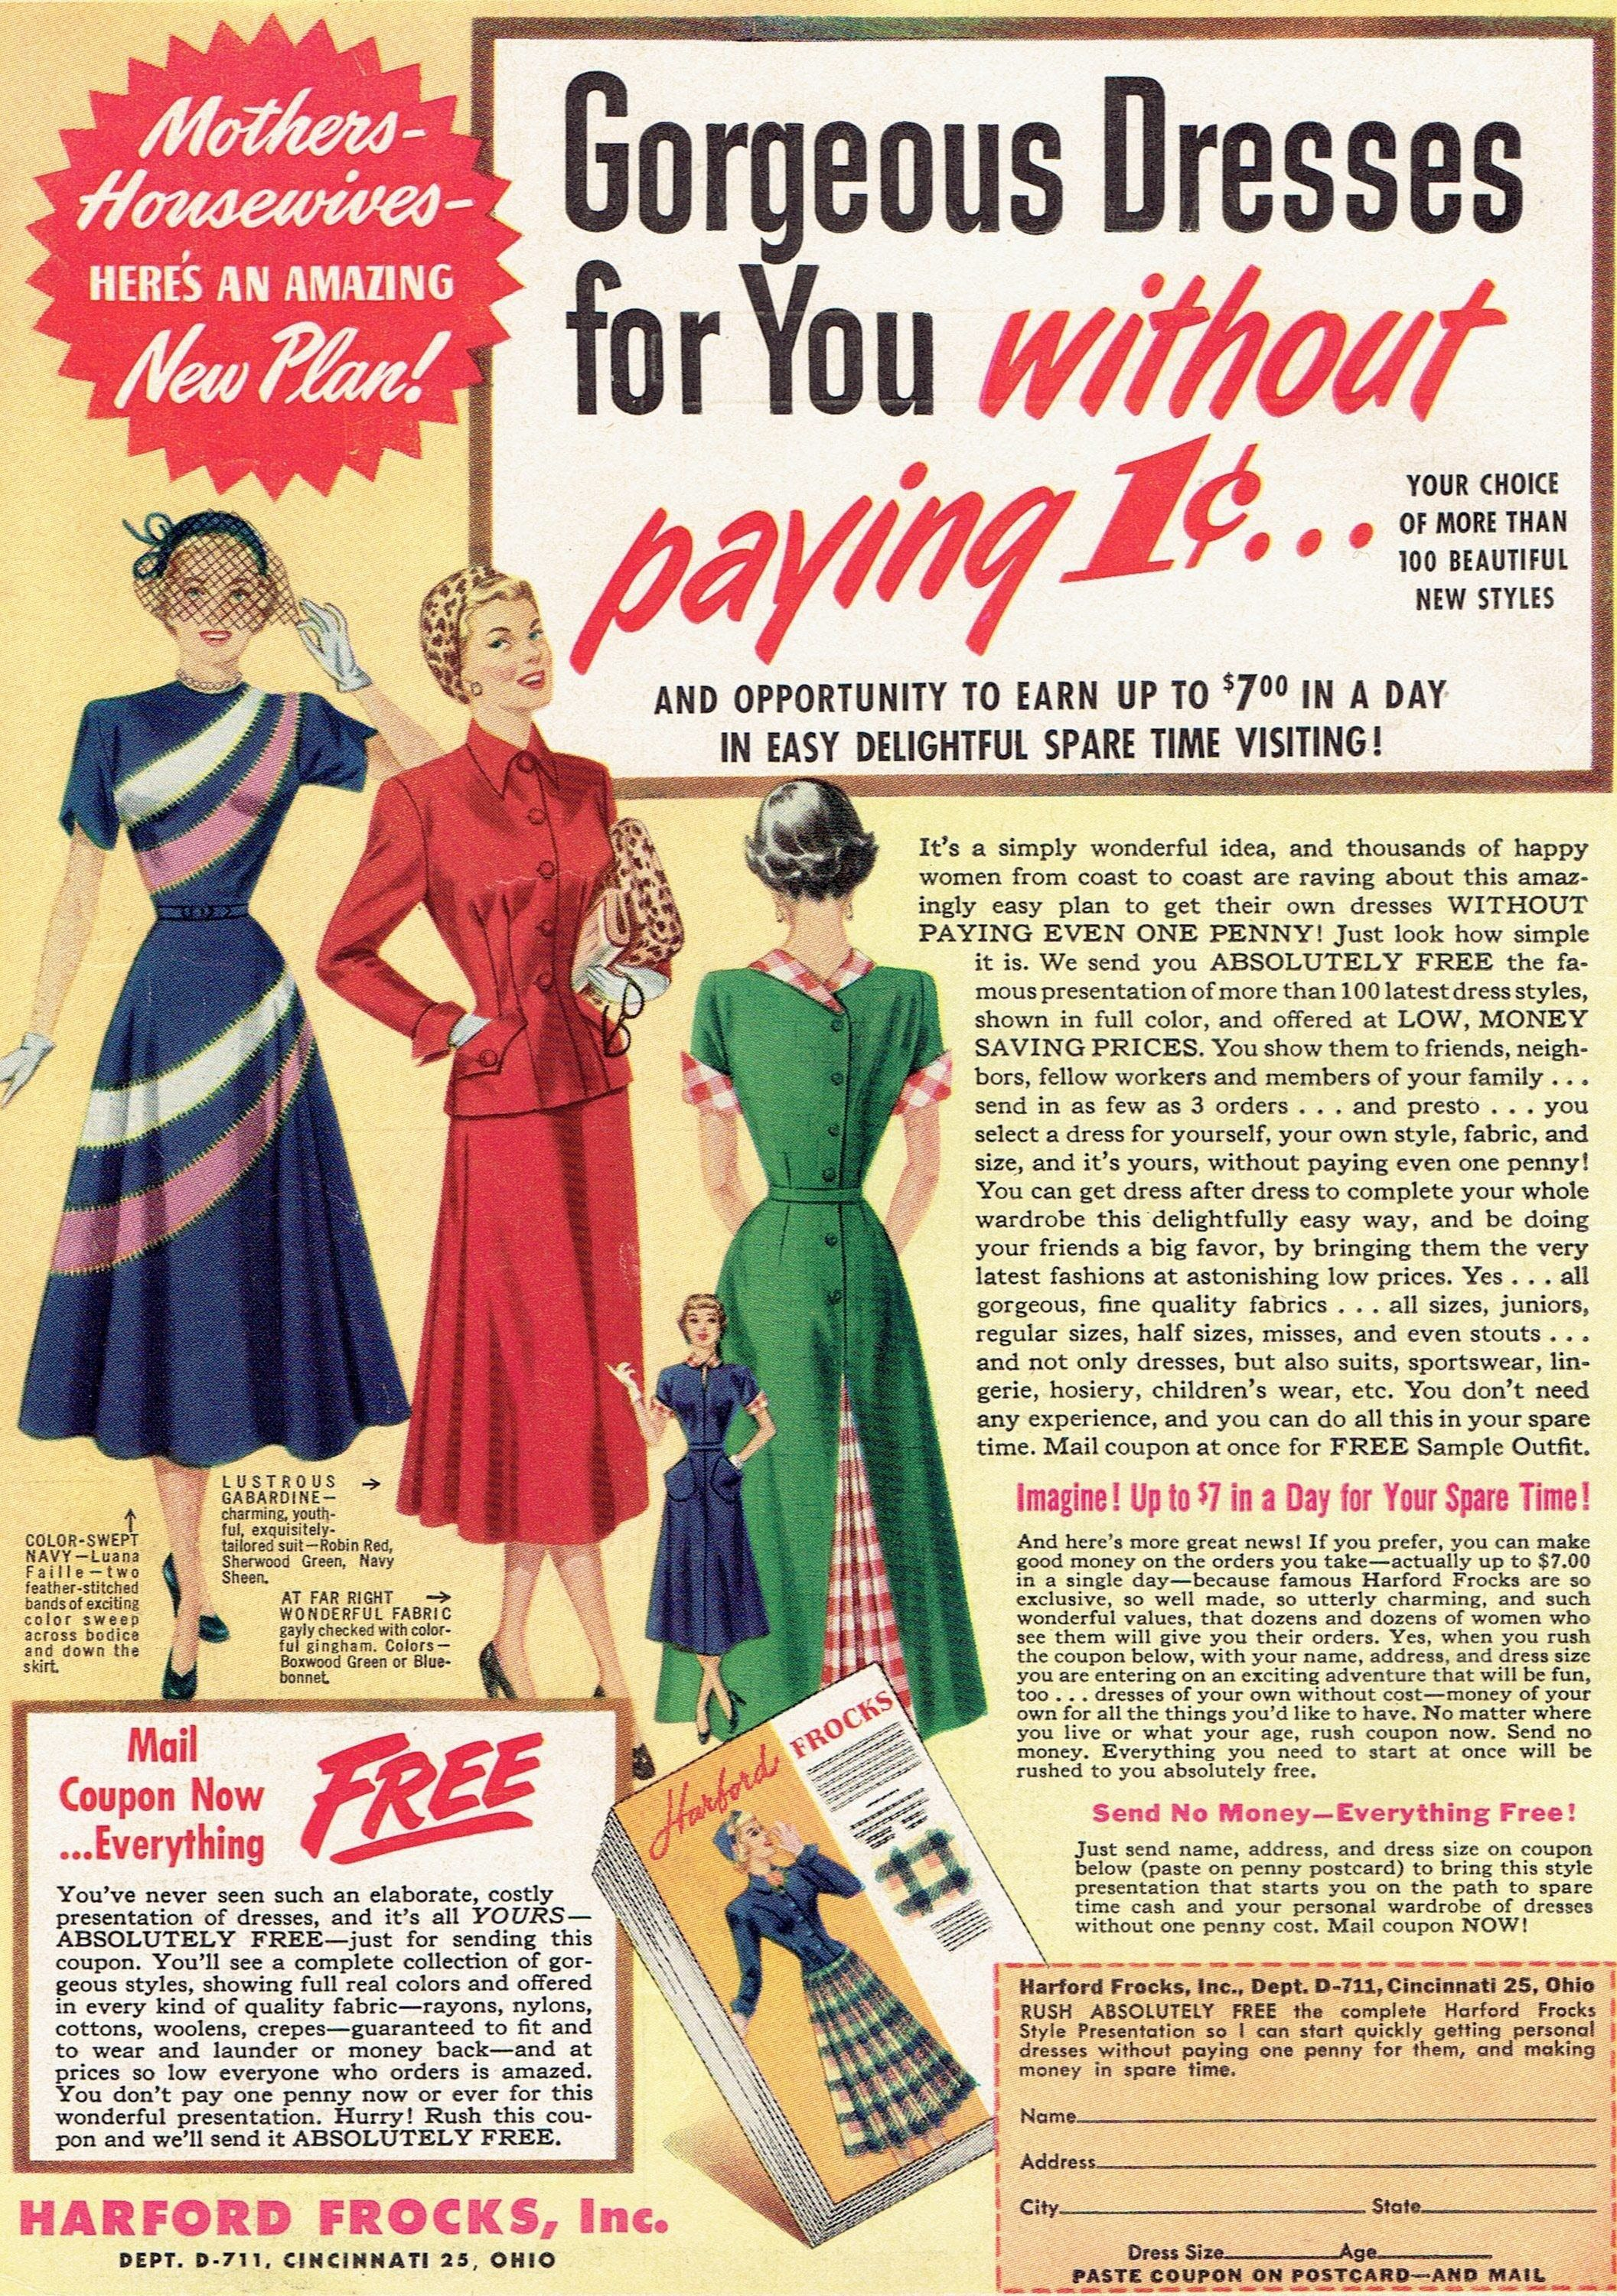 The Vintage Advertisements For Work From Home Jobs The Vintage Inn Vintage Advertisements Vintage Blog Work From Home Jobs